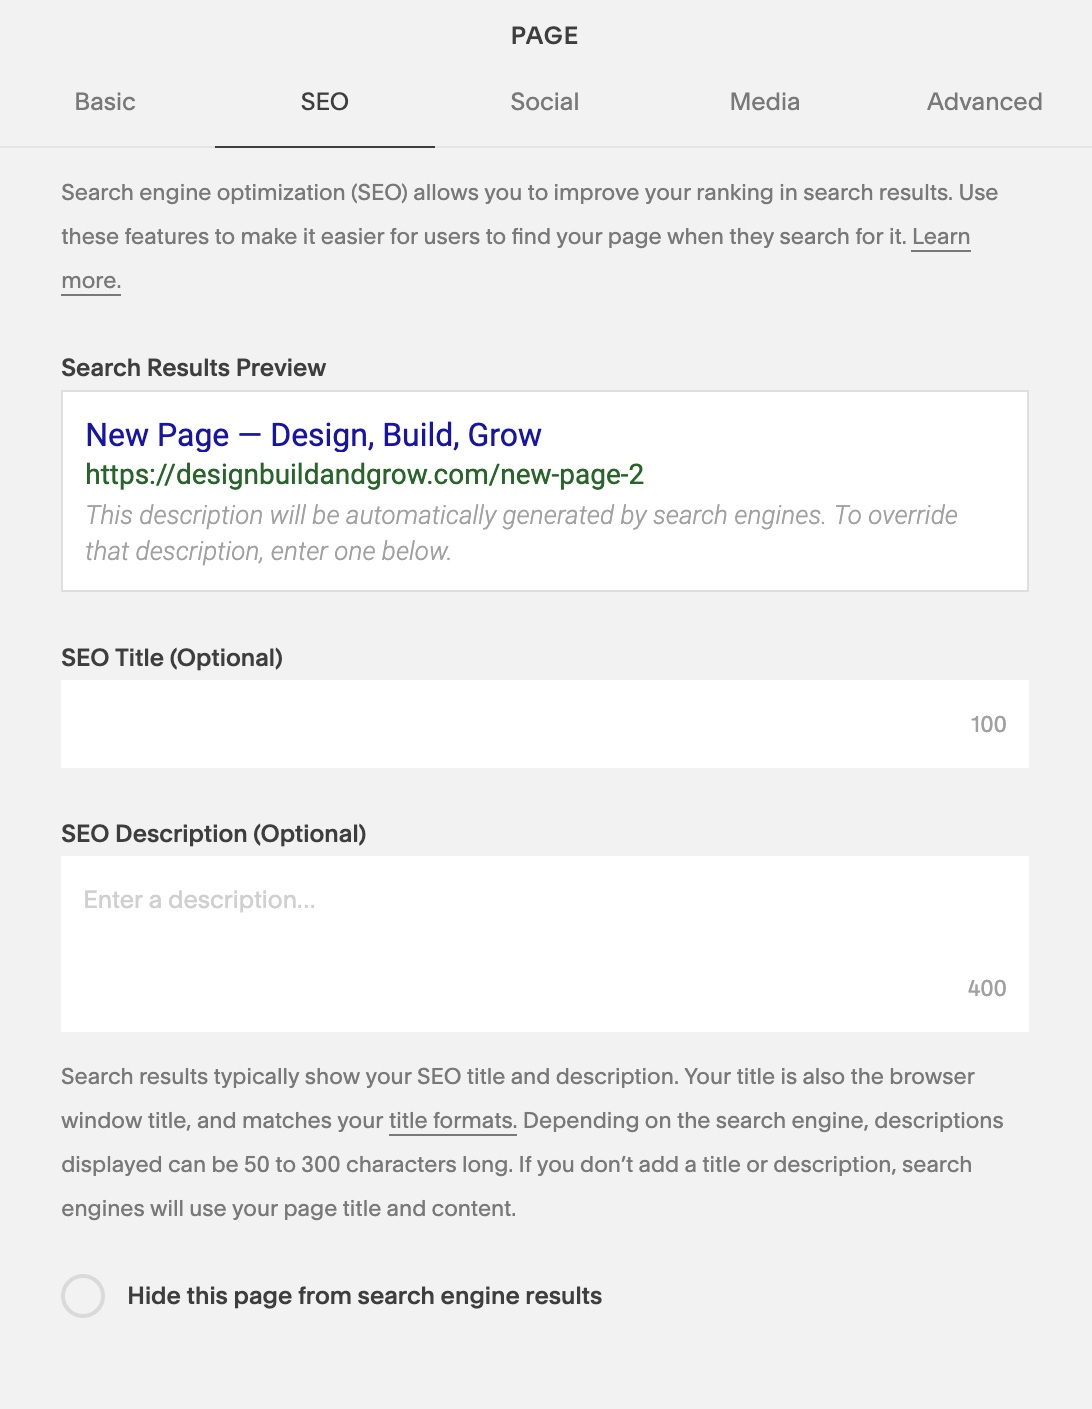 Screenshot of the SEO section of a page in Squarespace